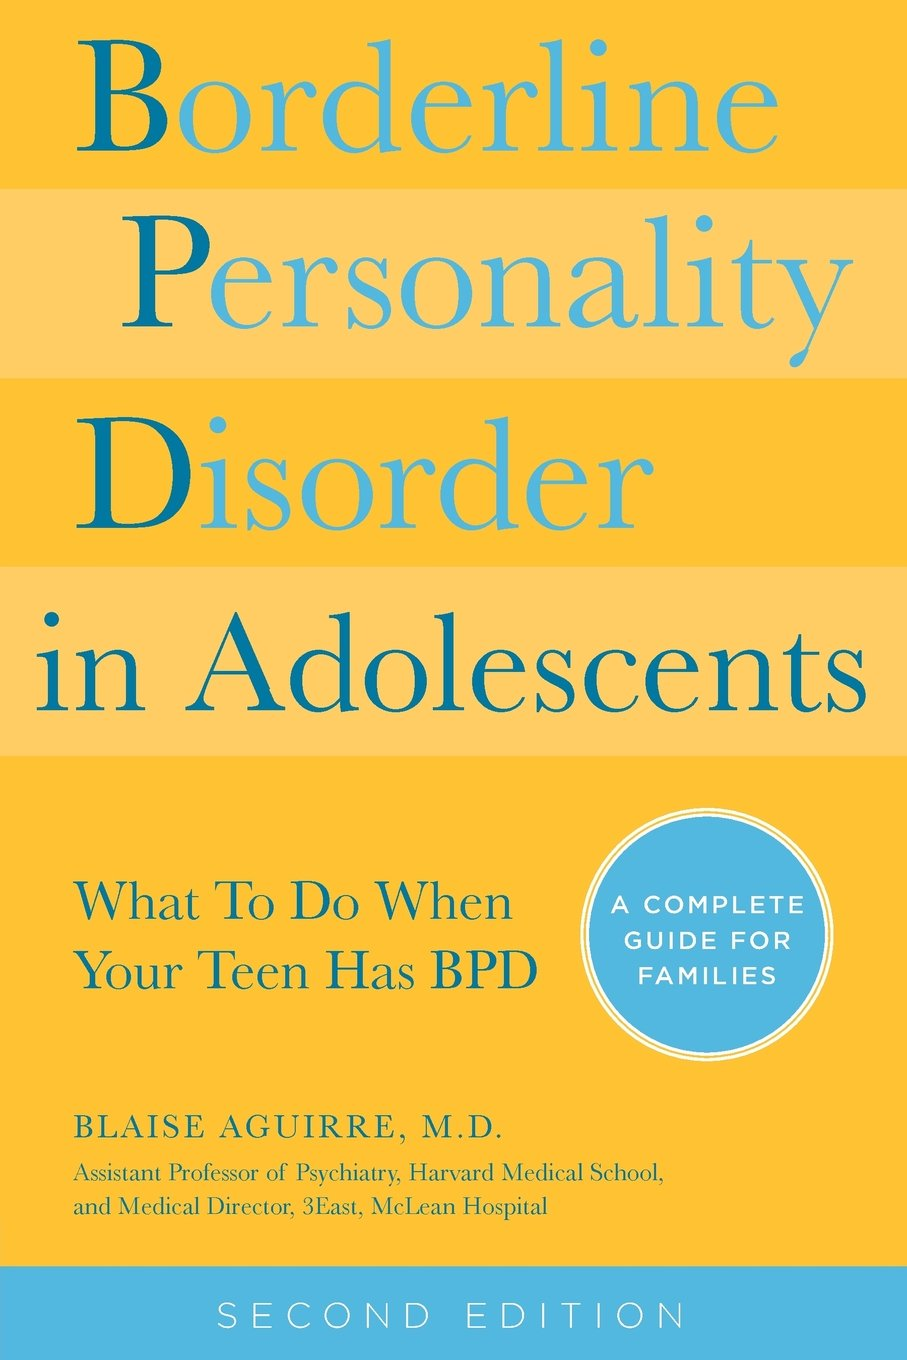 Borderline Personality Disorder in Adolescents, 2nd Edition: What To Do  When Your Teen Has BPD: A Complete Guide for Families: Blaise A. Aguirre:  ...